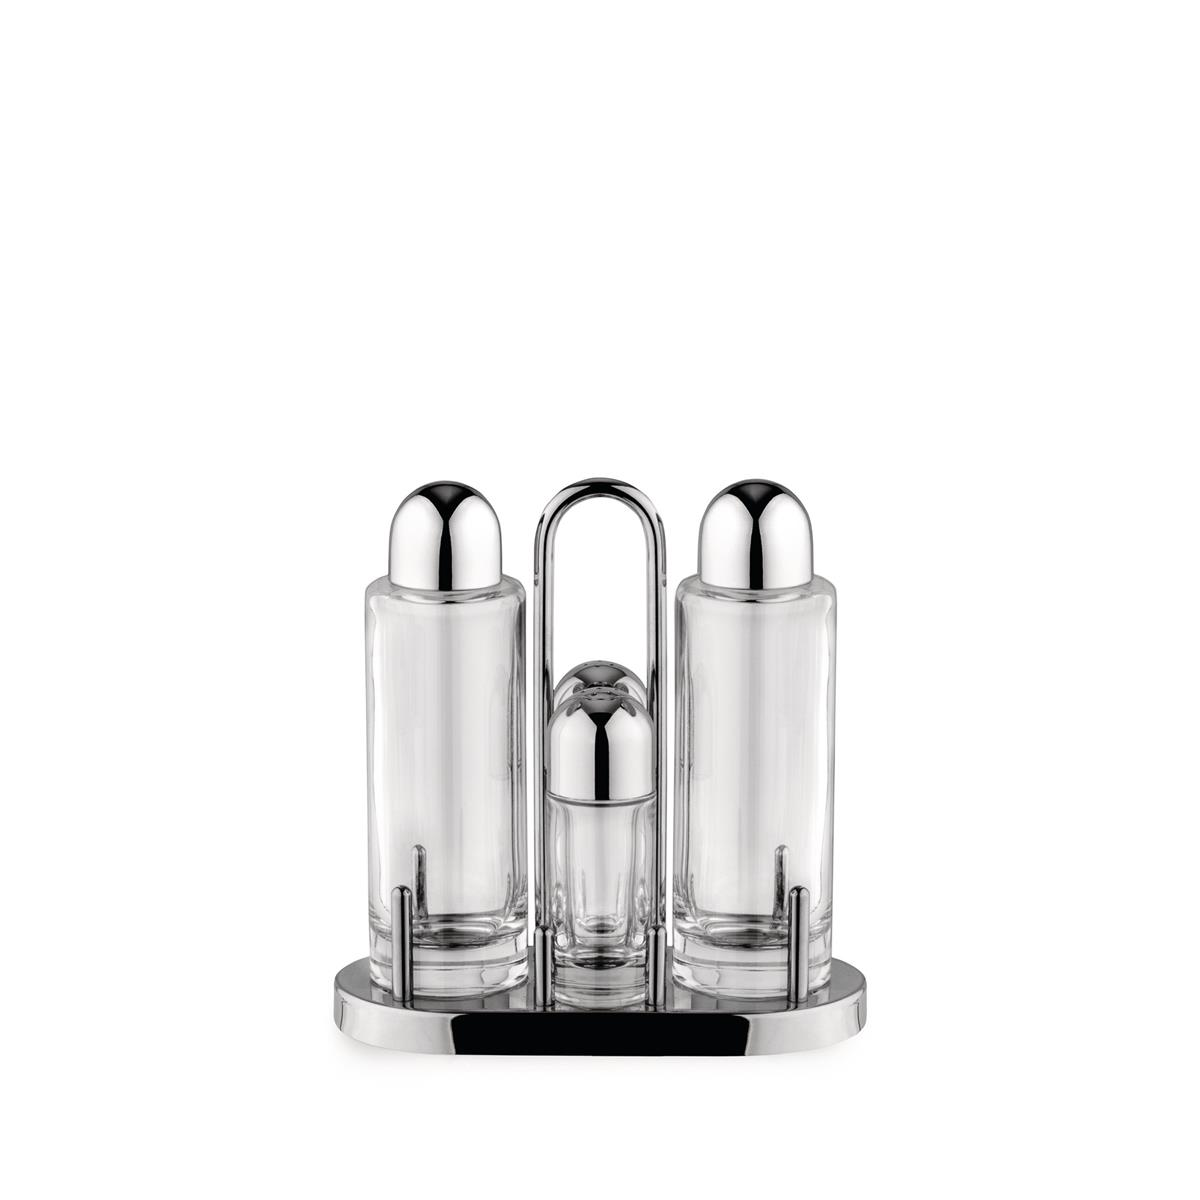 Alessi-Set for oil, vinegar, salt and pepper in 18/10 stainless steel and glass